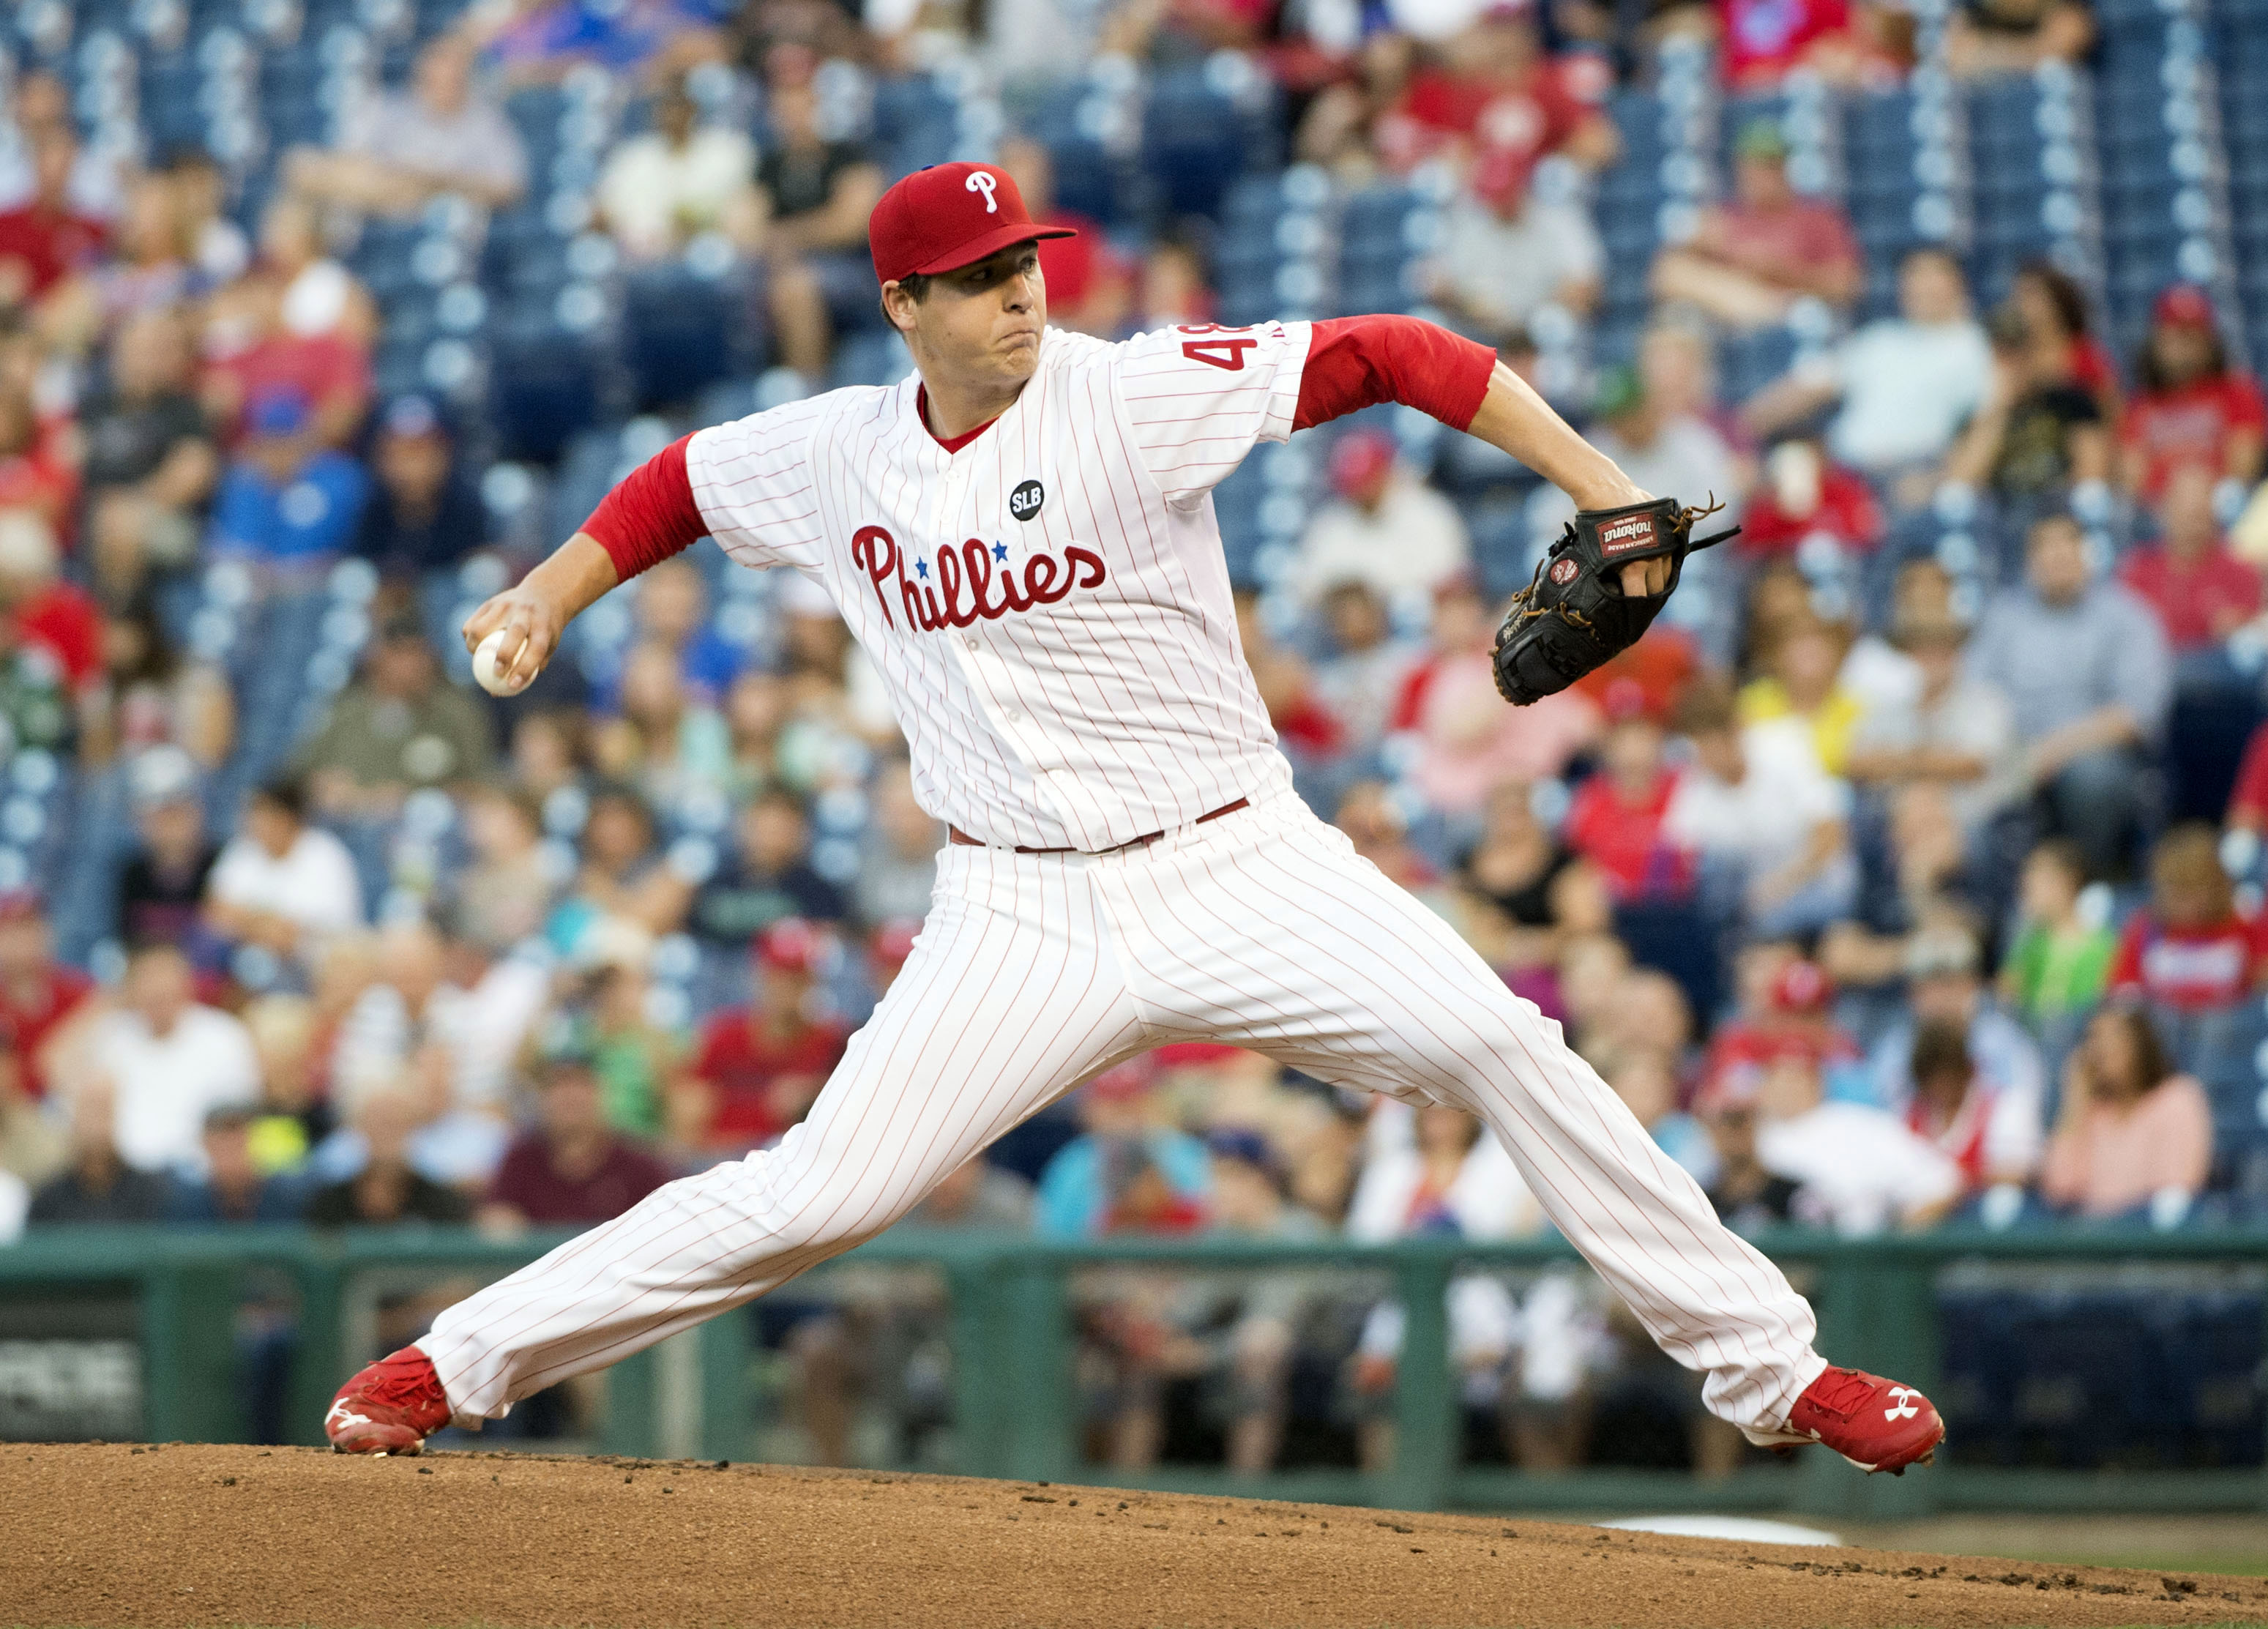 Depending on your system of chouce, Eickhoff will pitch acceptably or horribly in the season to come.